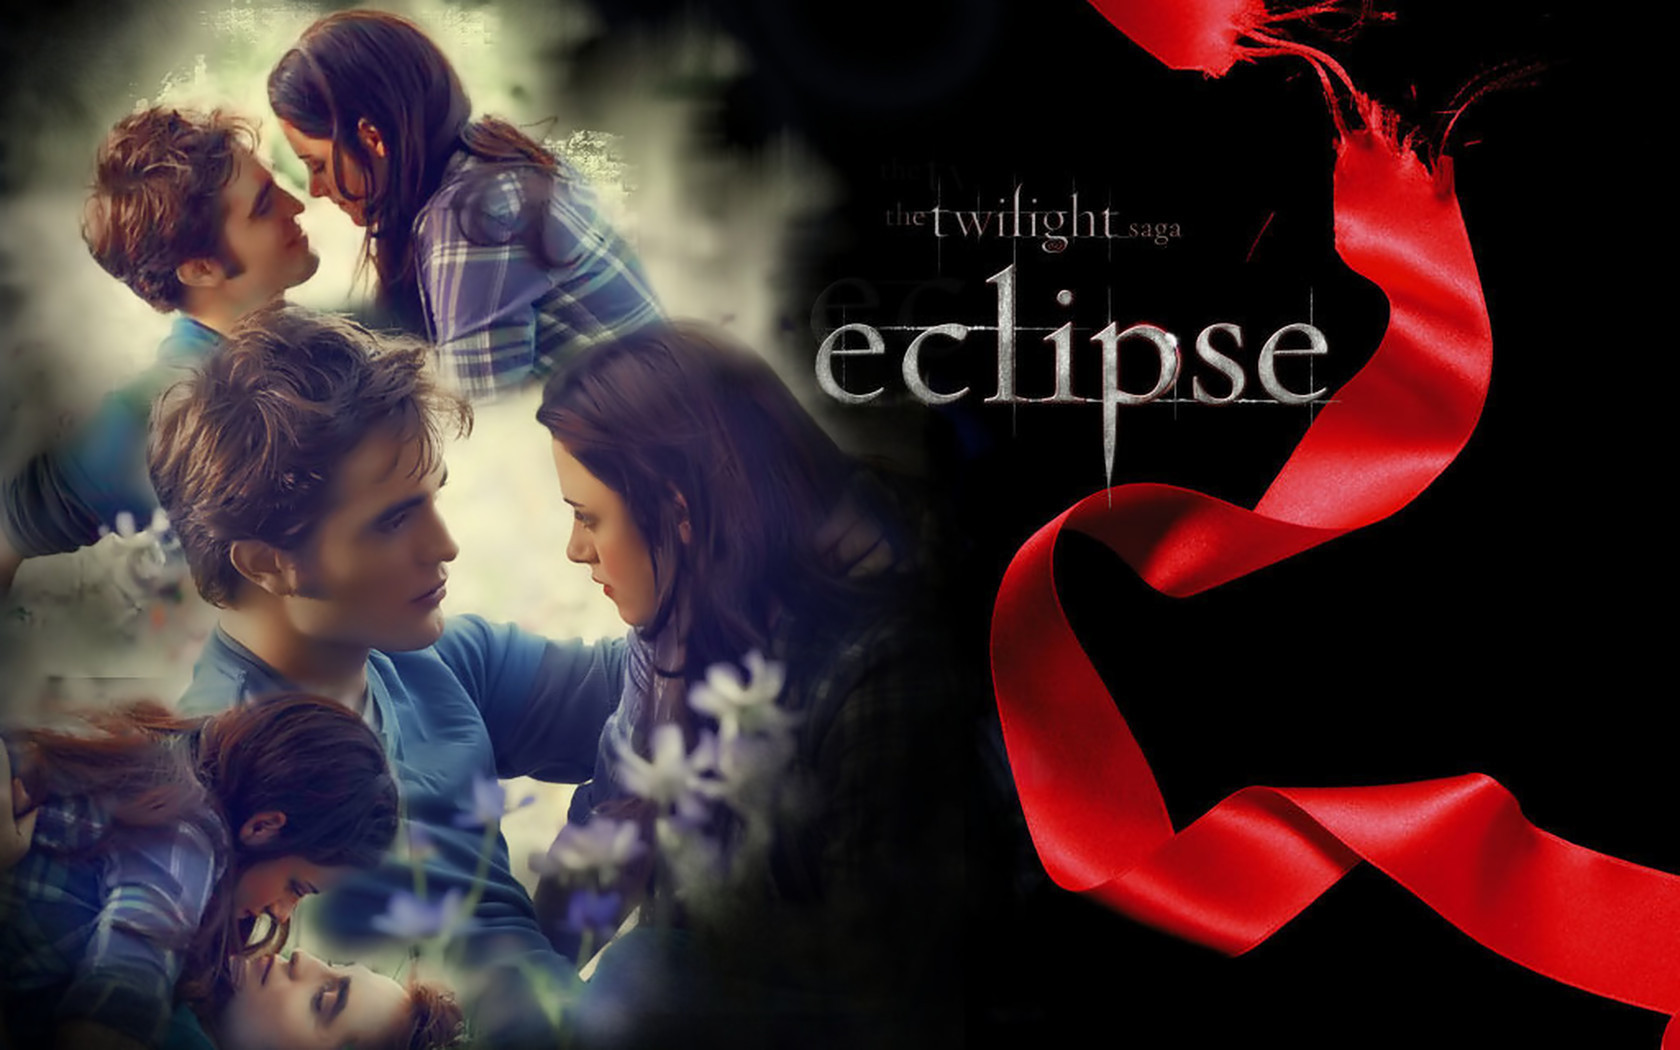 twilight series images eclipse - photo #32